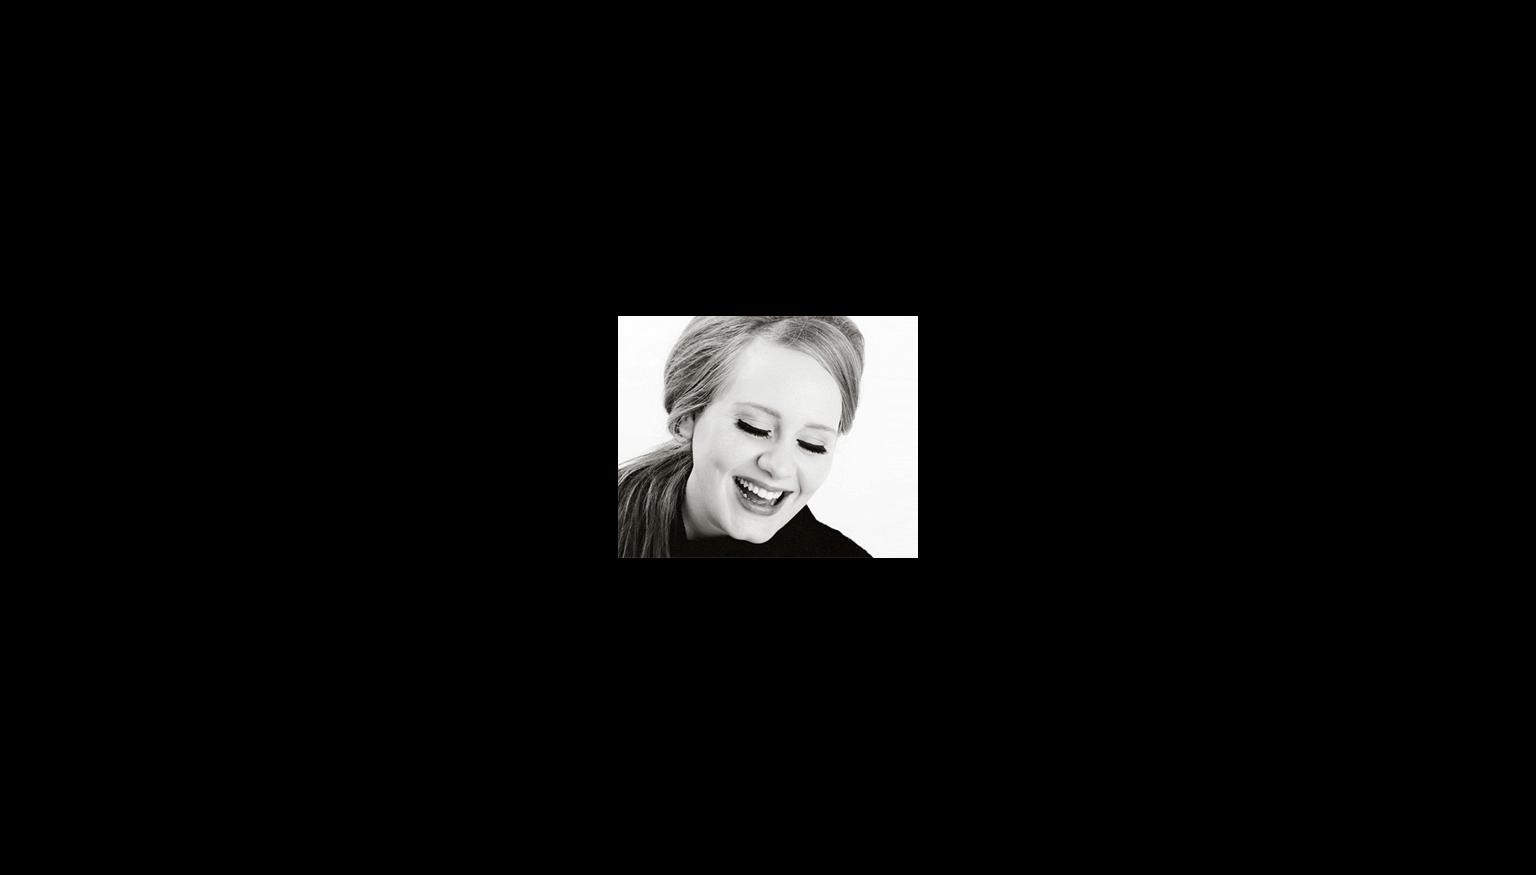 Single dating events brisbane 9